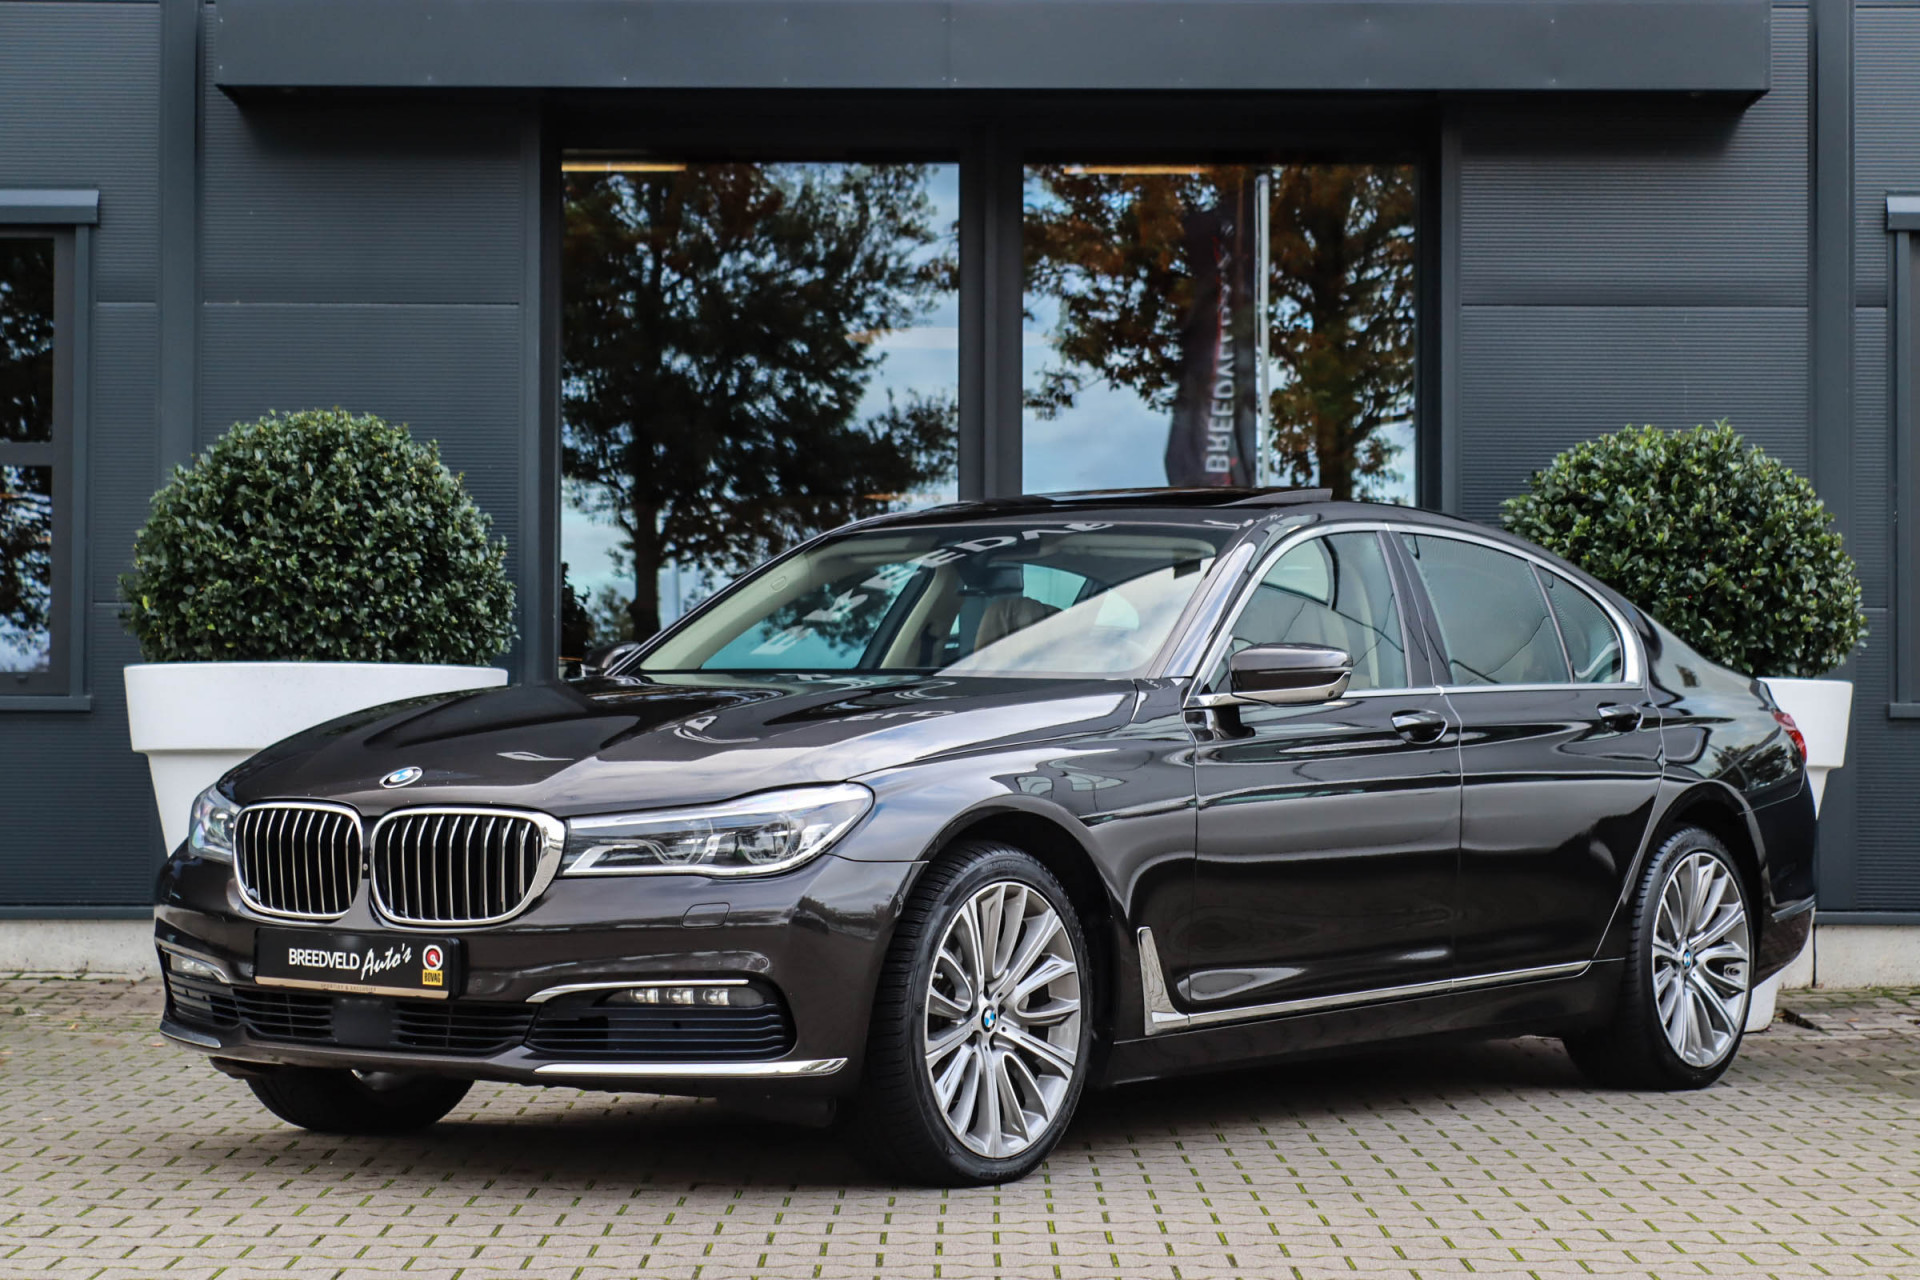 Tweedehands BMW 7 Serie 730d 2015 occasion